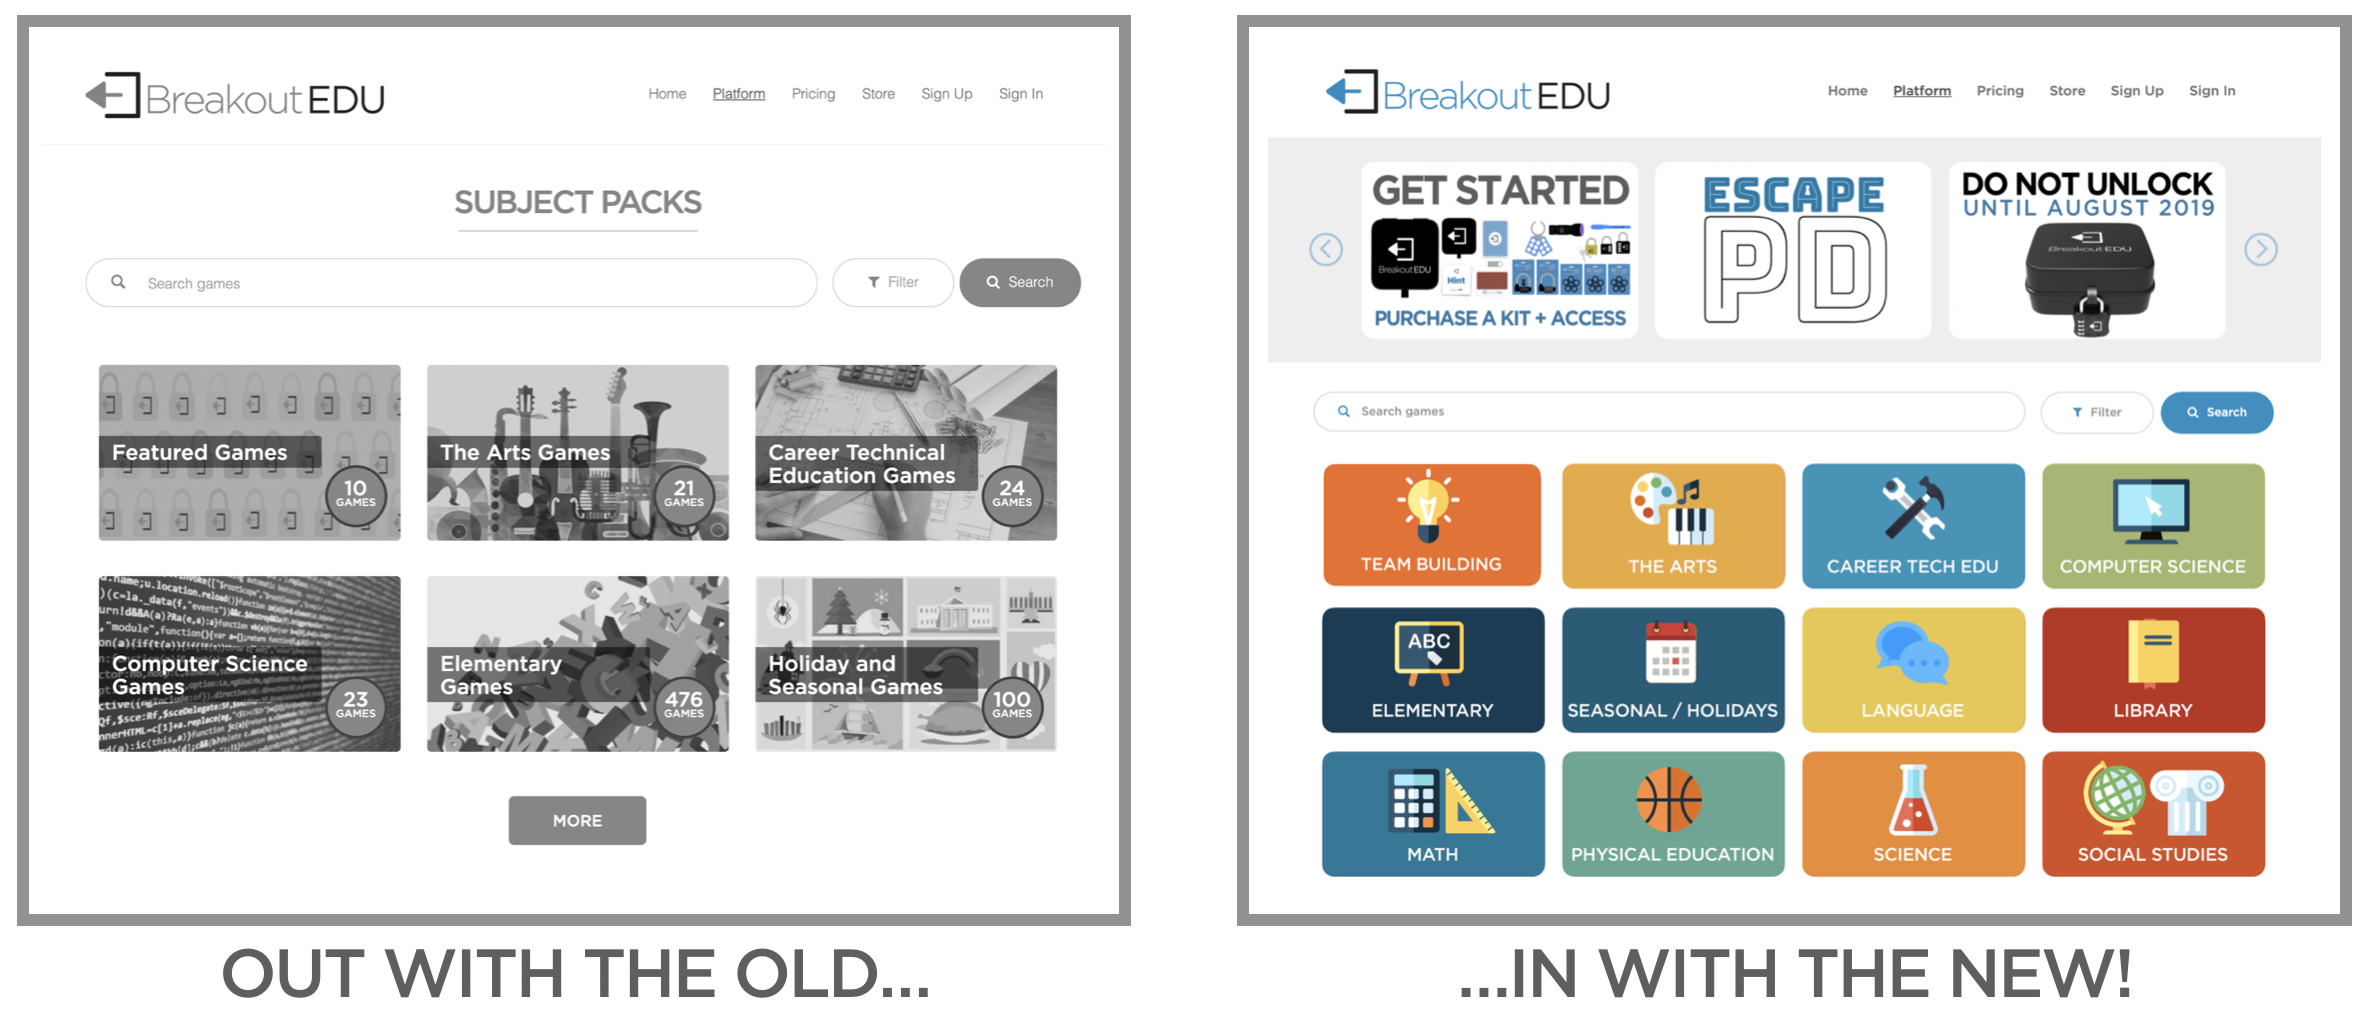 88cd887e8 We used this occasion to help make navigating Breakout EDU even easier and  more straight-forward for teachers. In addition to a new look, we have  added some ...